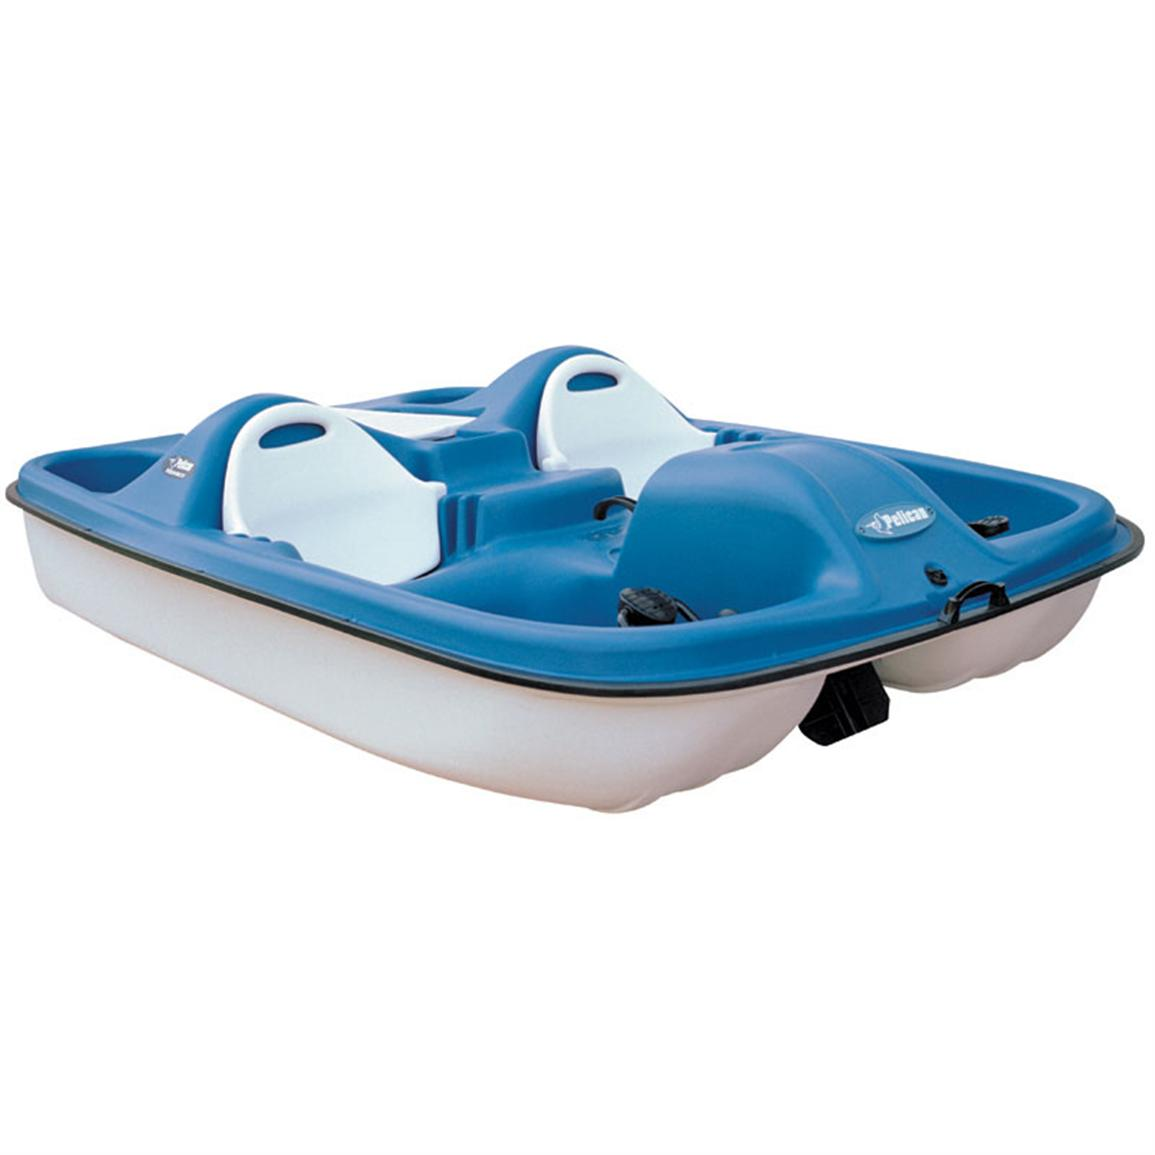 Pelican Paddle Boat Replacement Parts : Older pelican paddle boat bing images